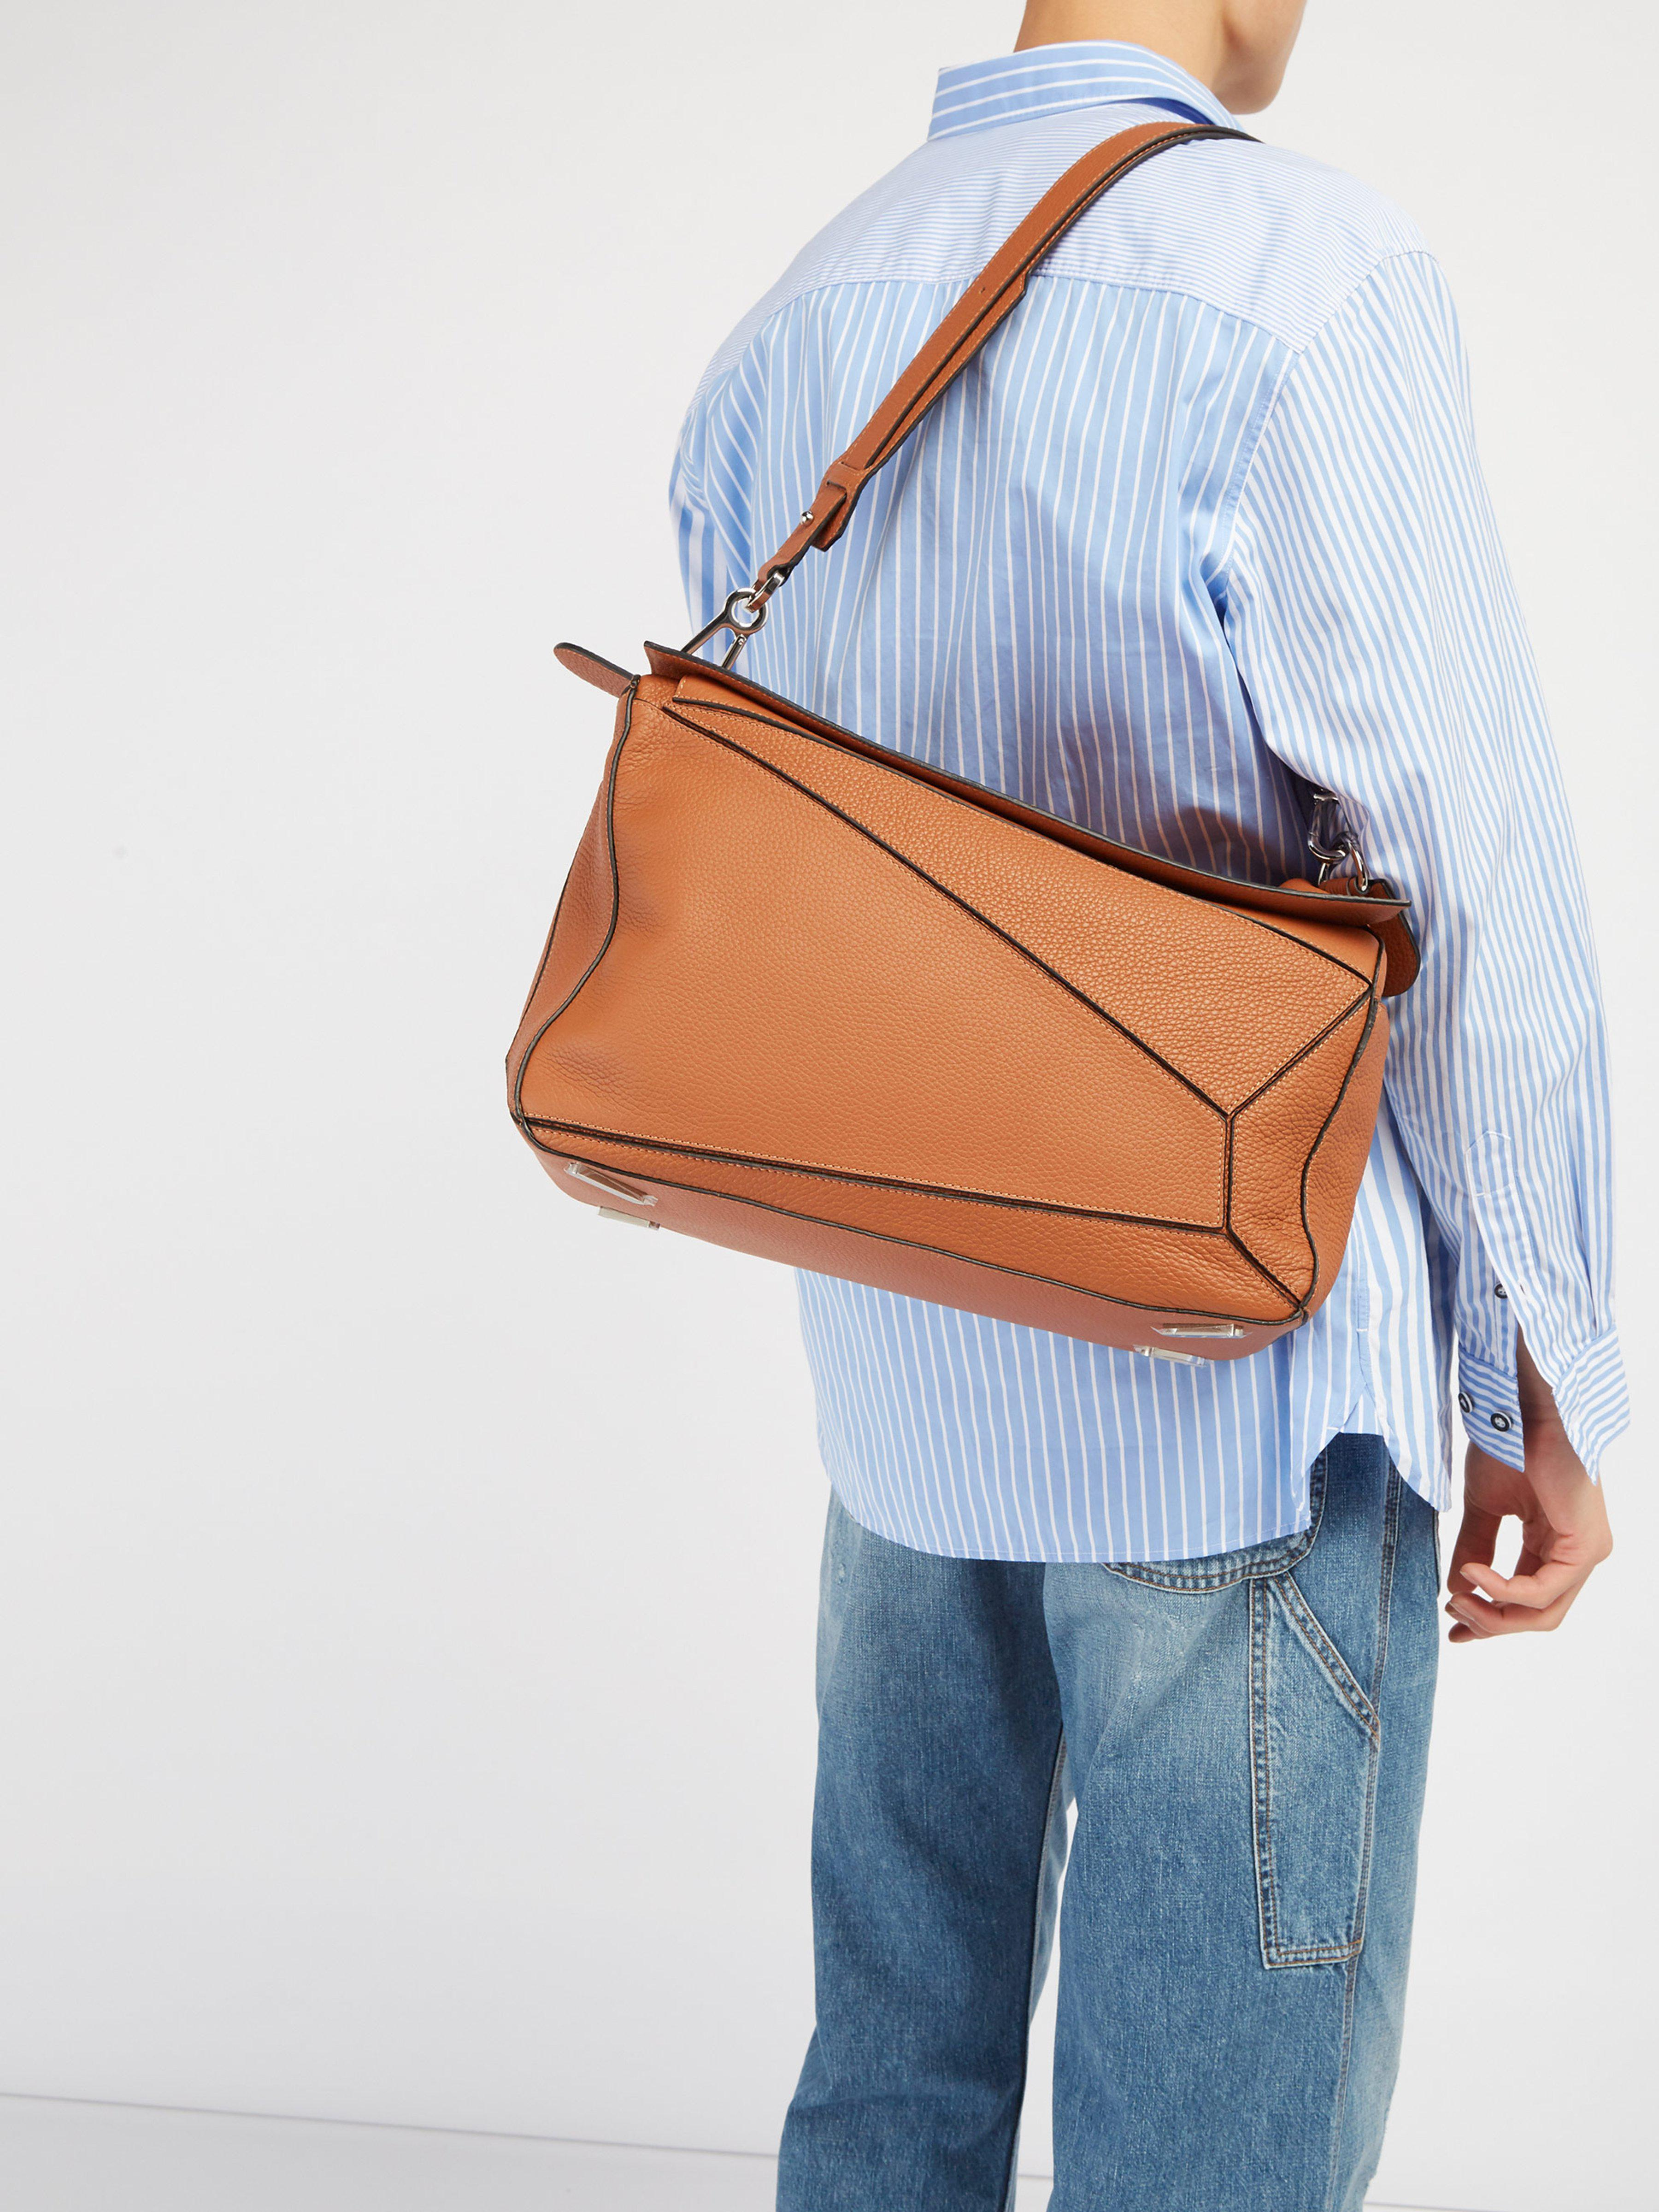 Loewe - Brown Puzzle Extra Large Grained Leather Bag for Men - Lyst. View  fullscreen cbe96ad855d21